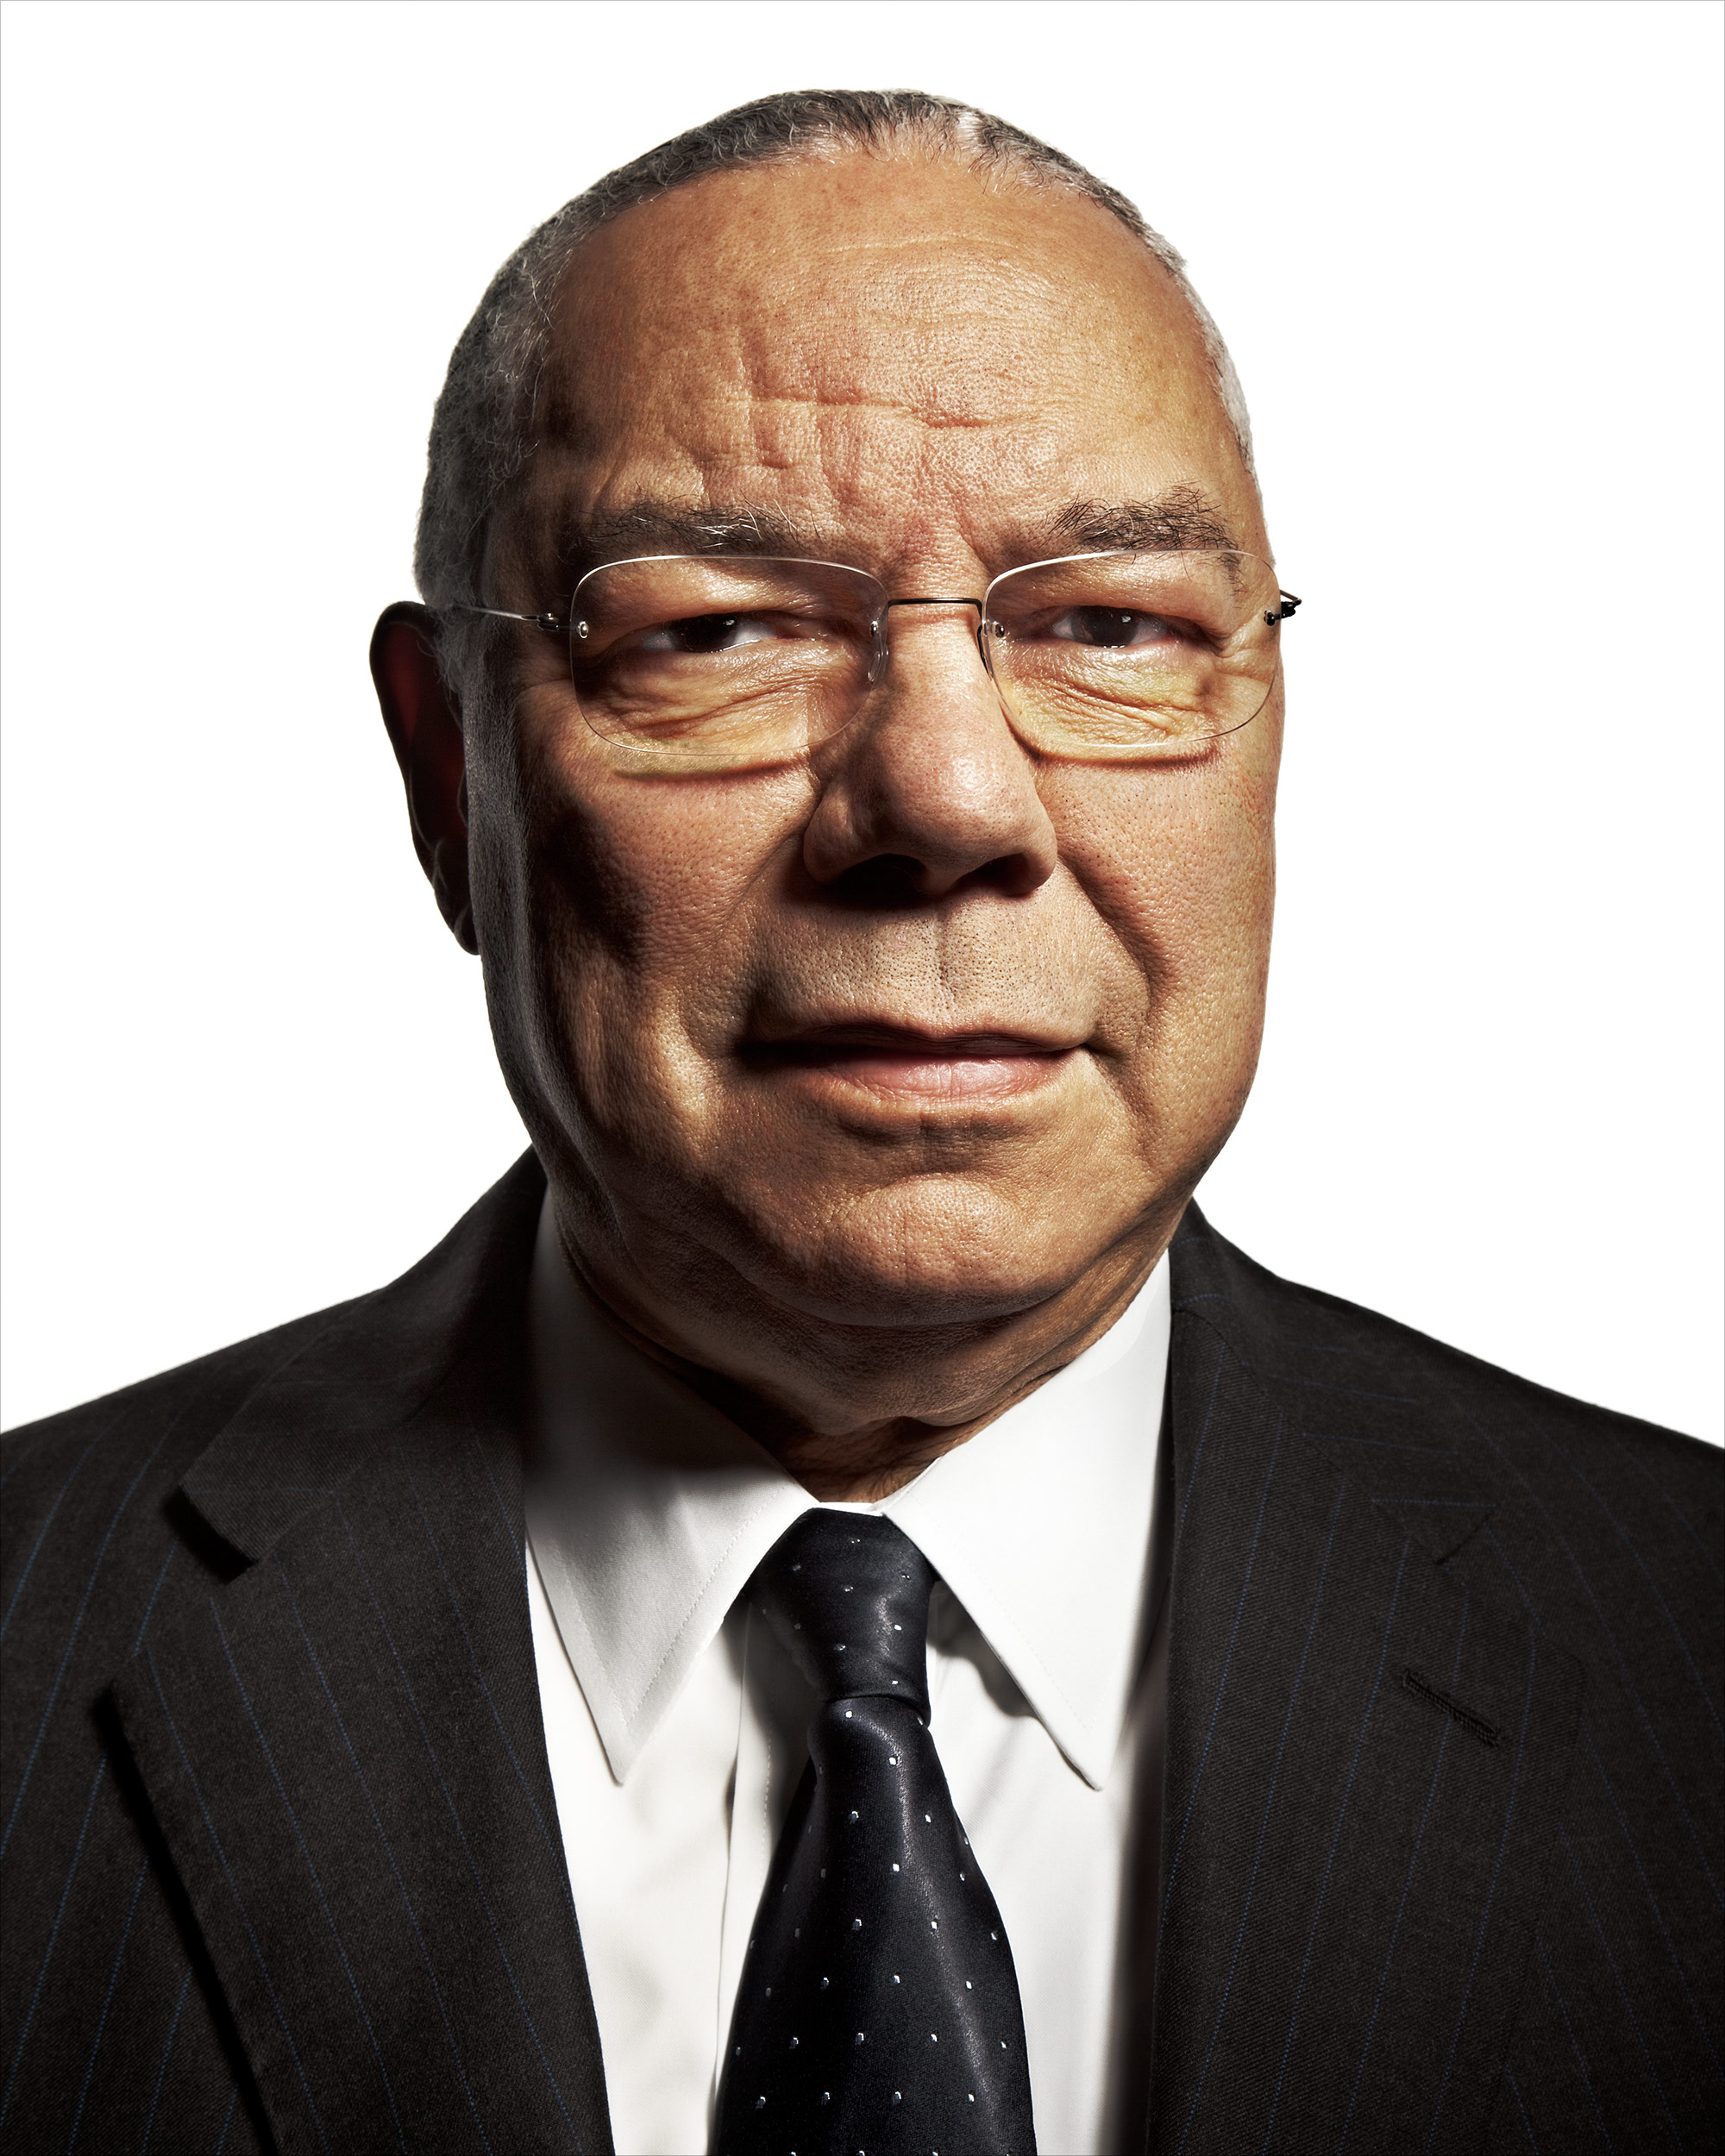 General Colin Powell, former Secretary of State